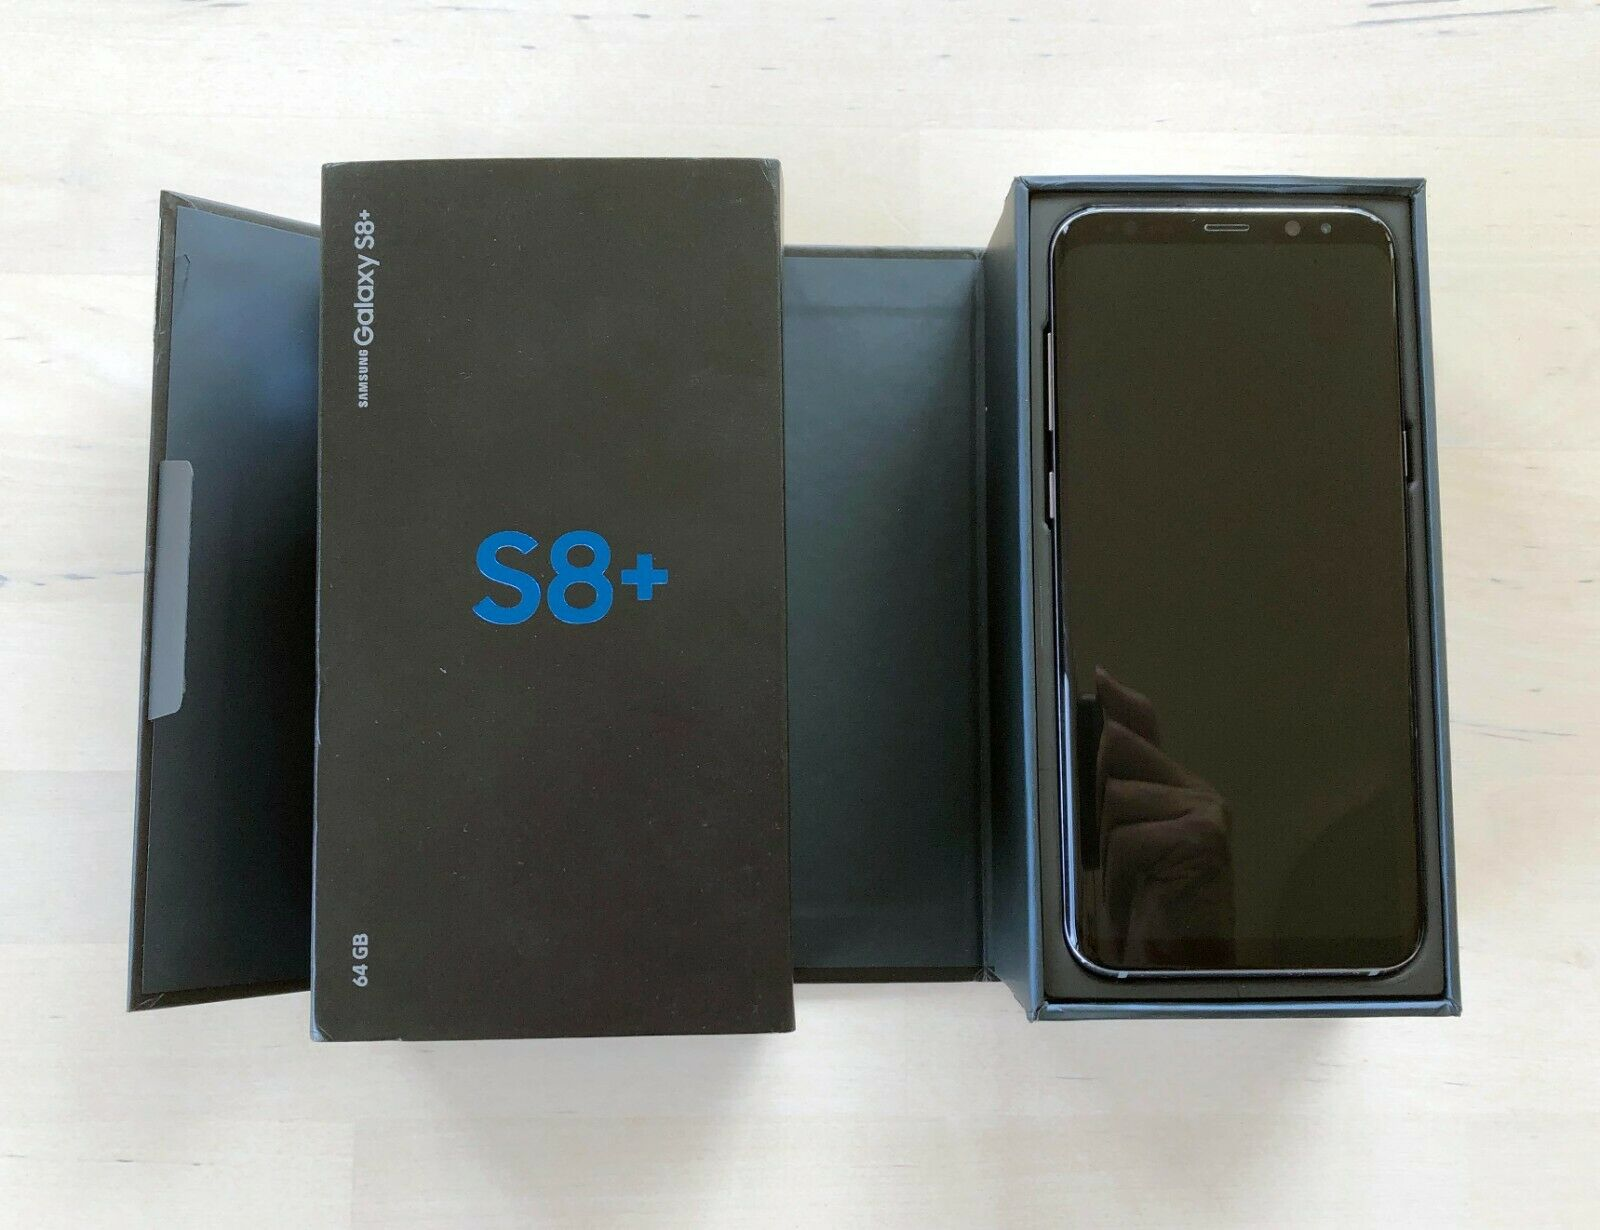 Android Phone - SAMSUNG Galaxy S8+ Plus 64GB Dual Sim Unlocked Smartphone Orchid Gray As New